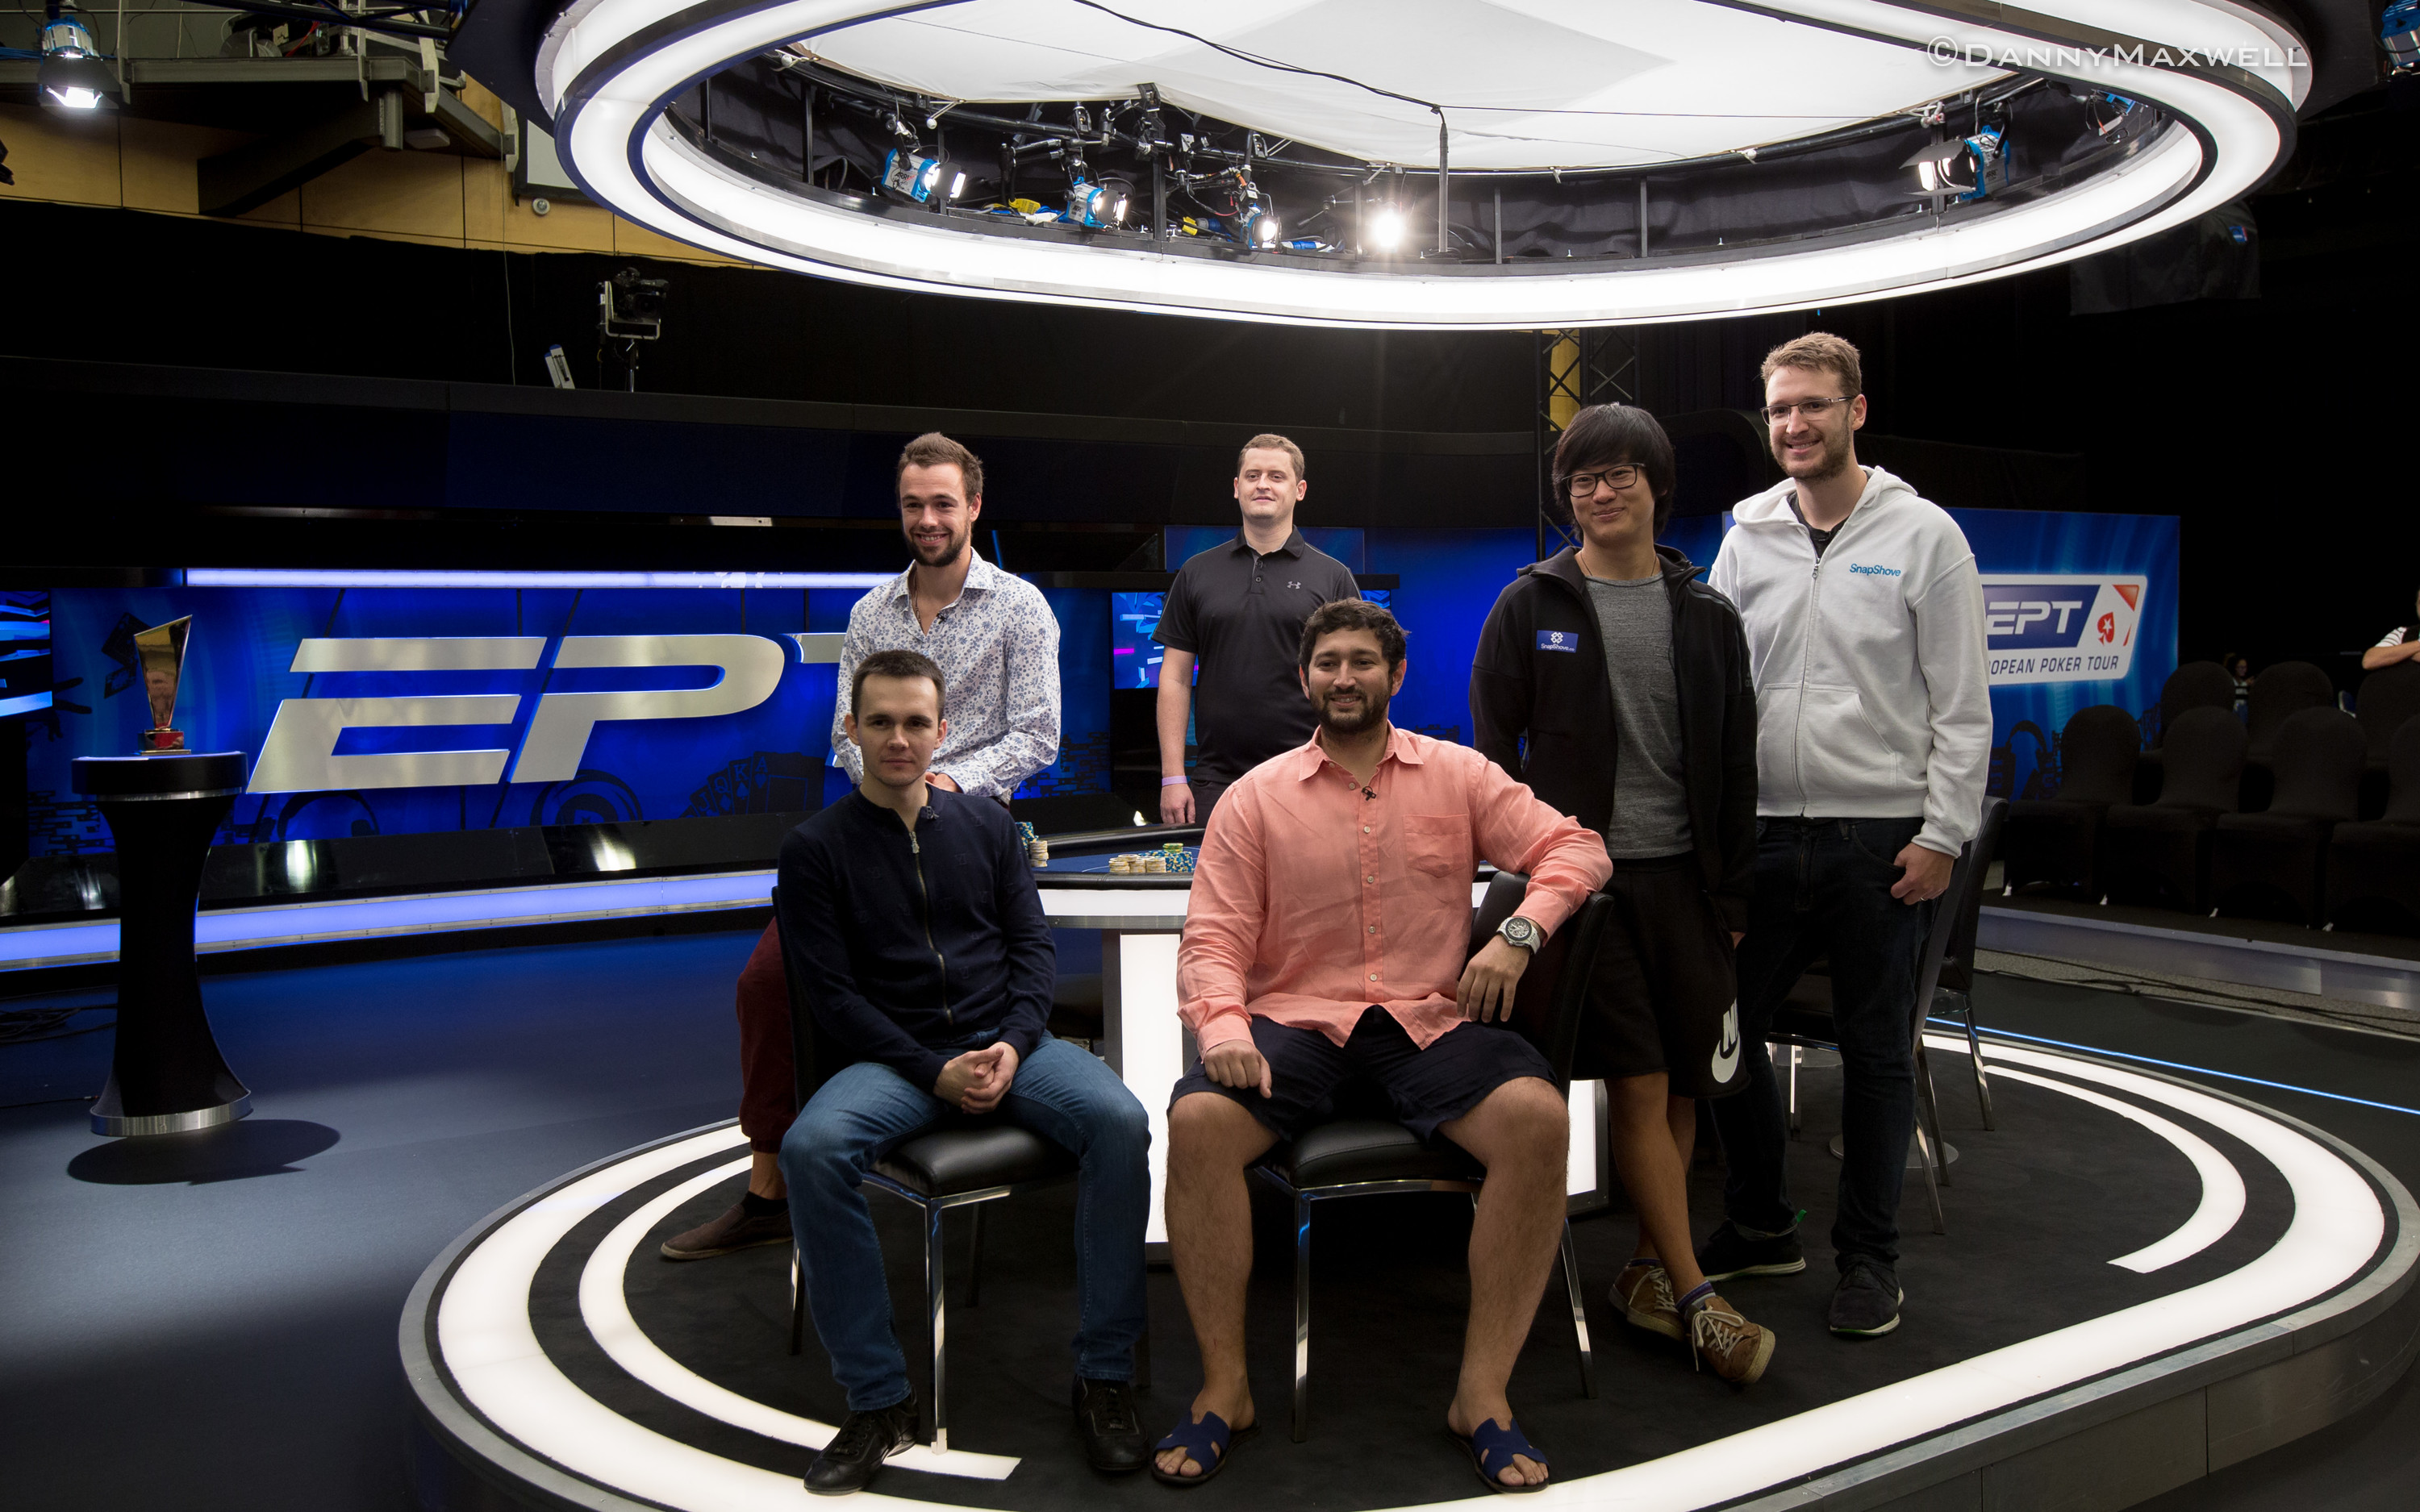 EPT 13 Malta €25,750 High Roller Final Table